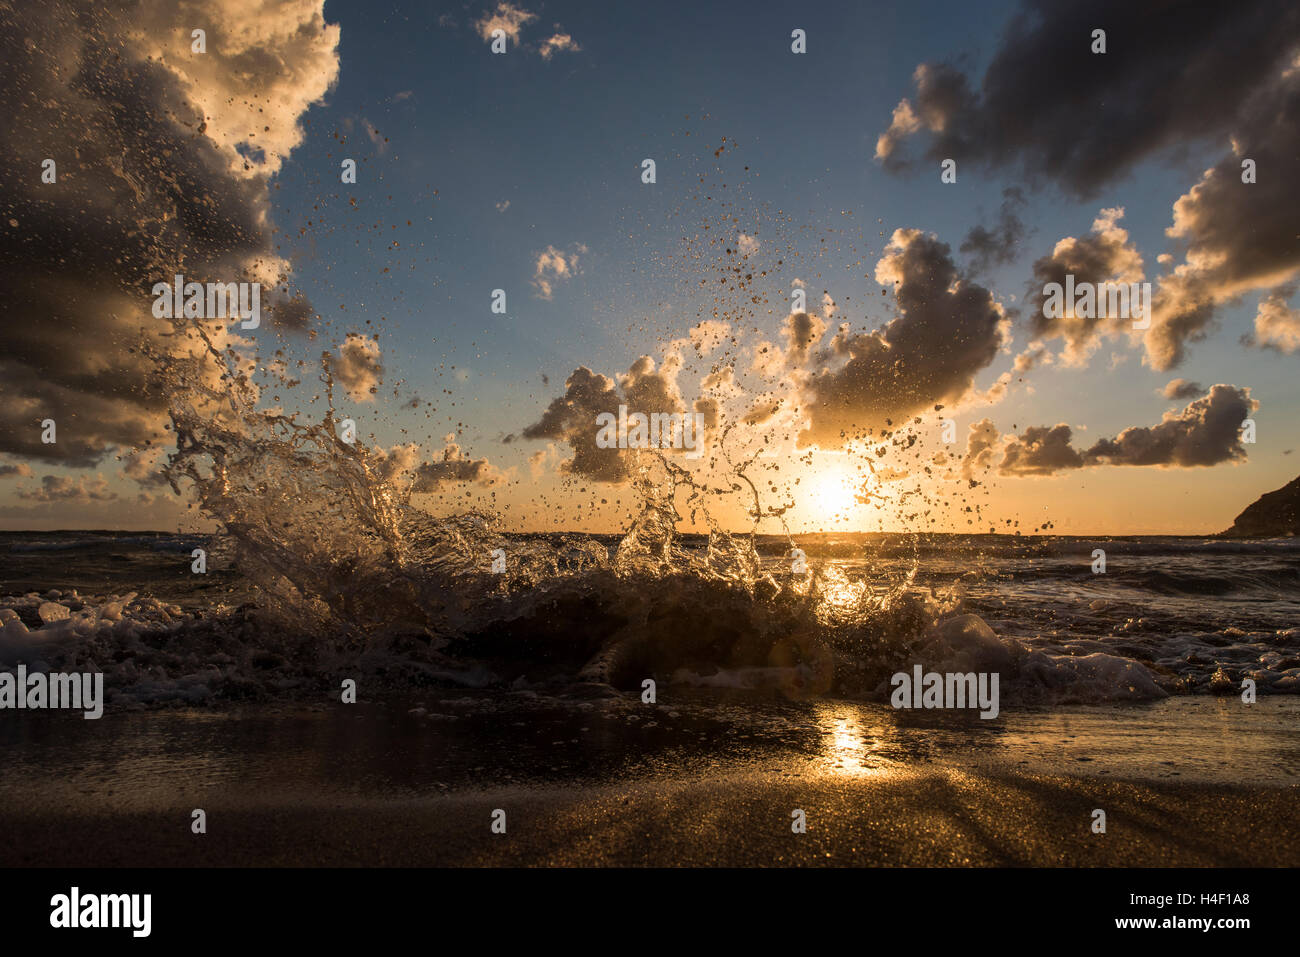 Crashing waves on the beach at sunset, Porto Ferro, Sardinia, Italy - Stock Image